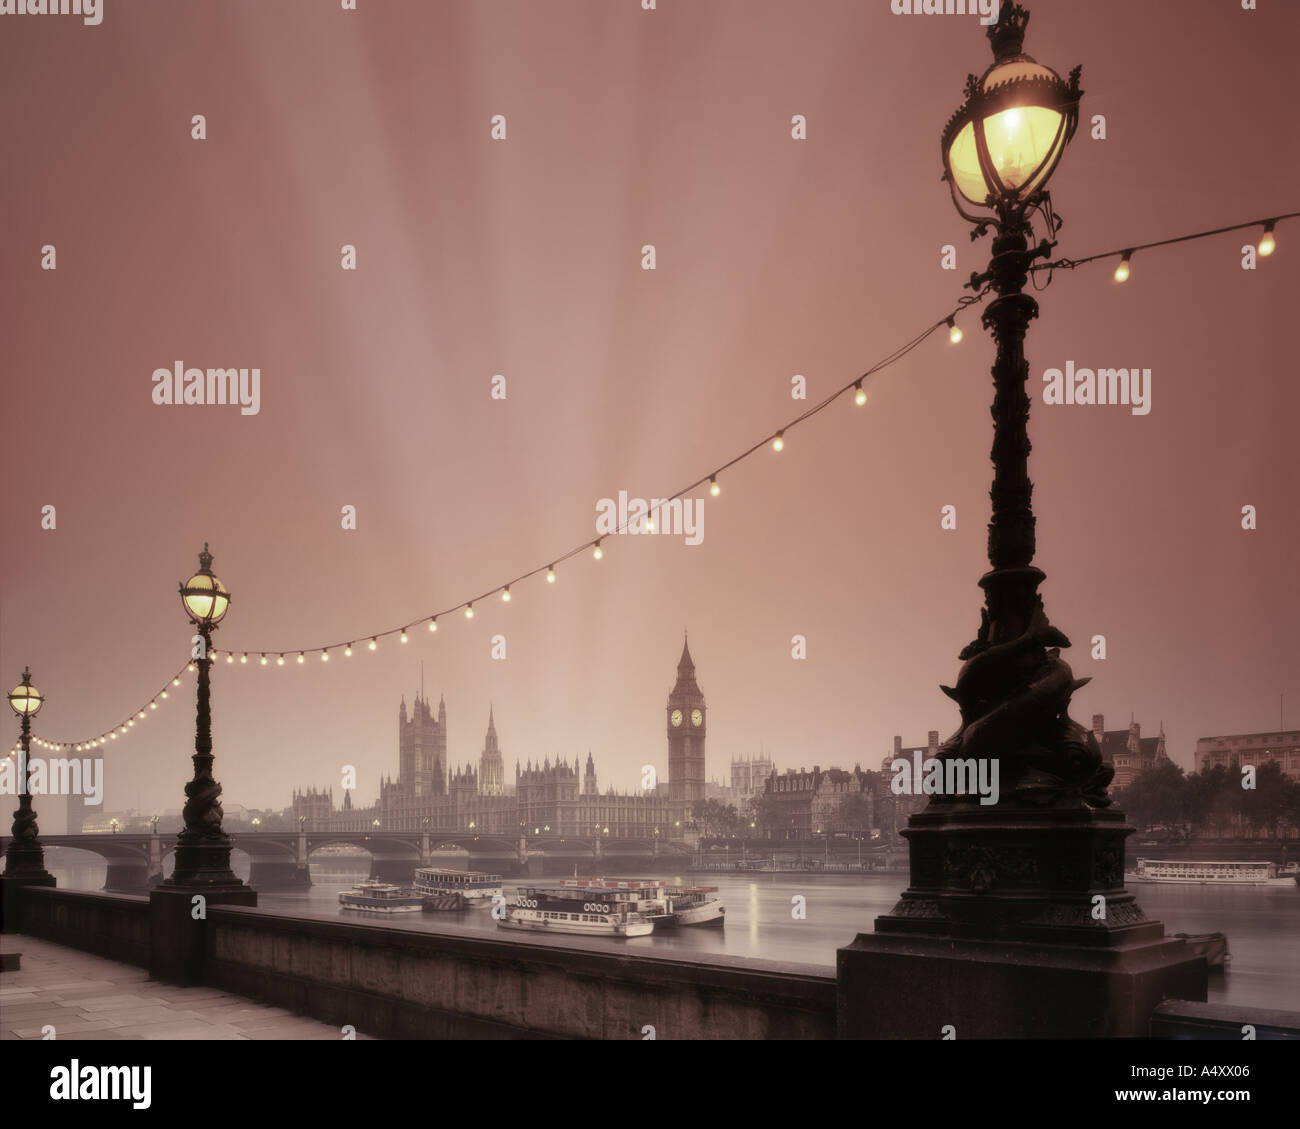 GB - LONDON: Westminster - Stock Image